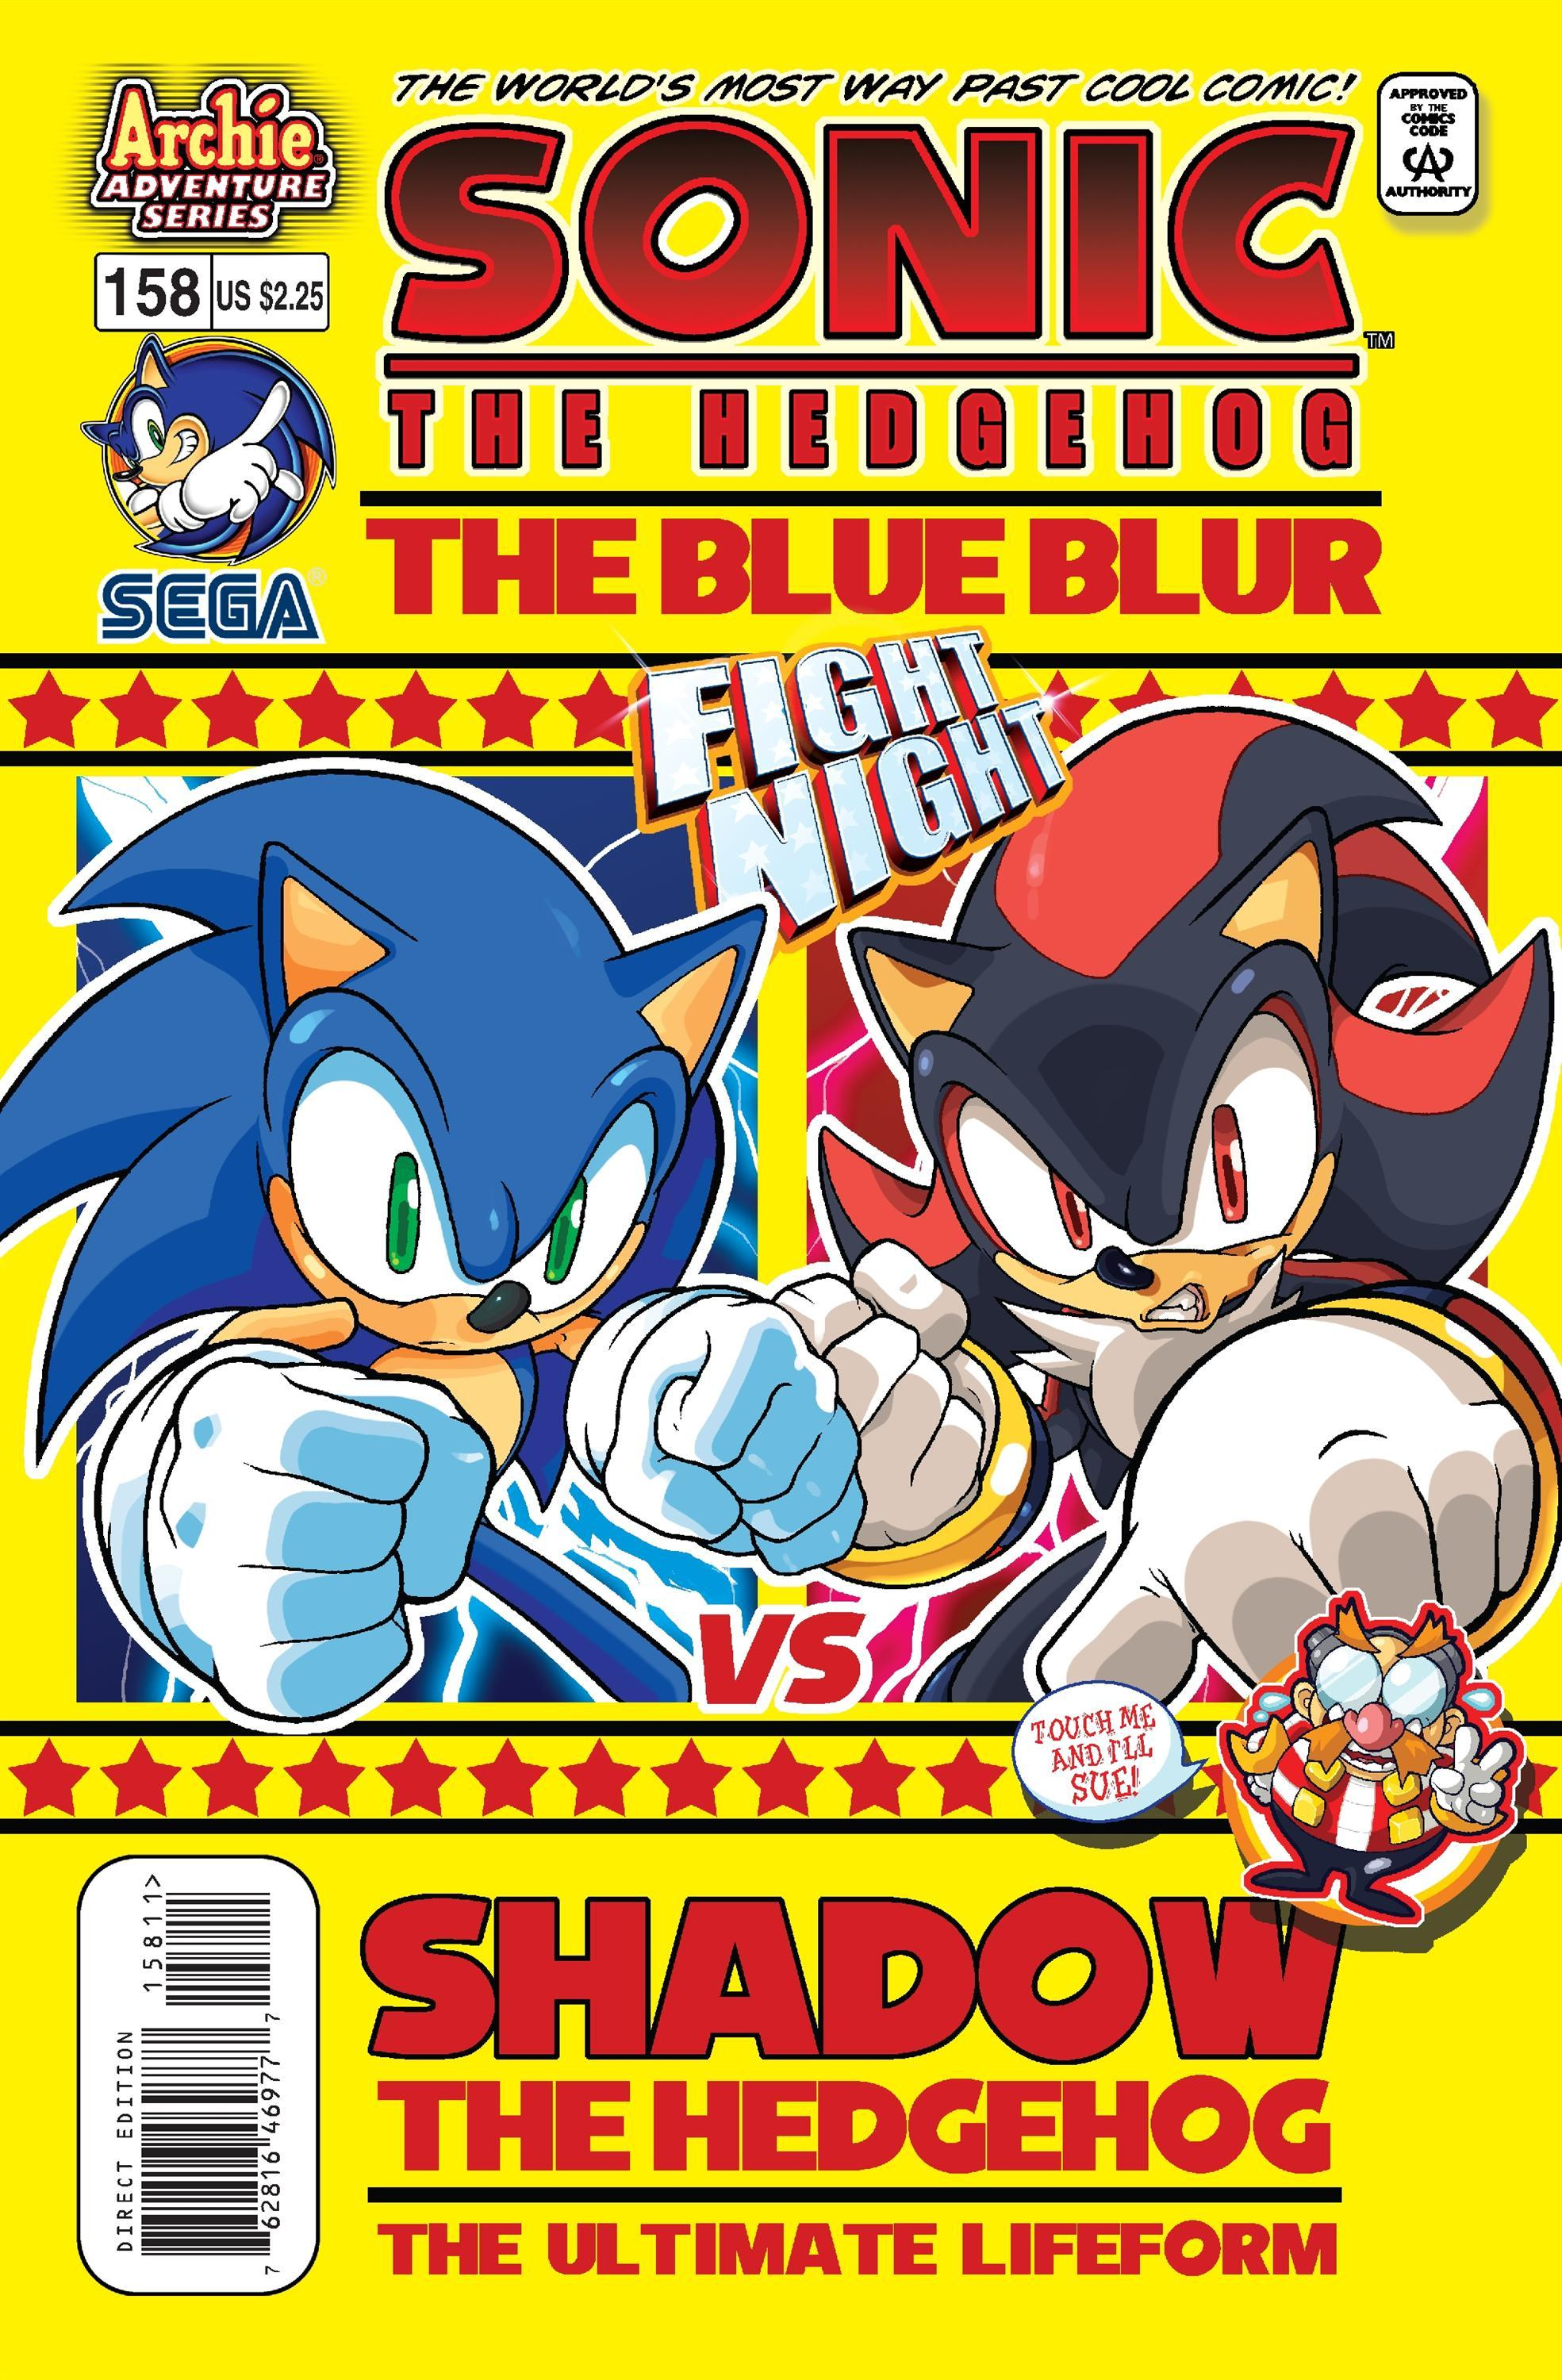 Archie Sonic the Hedgehog Issue 158